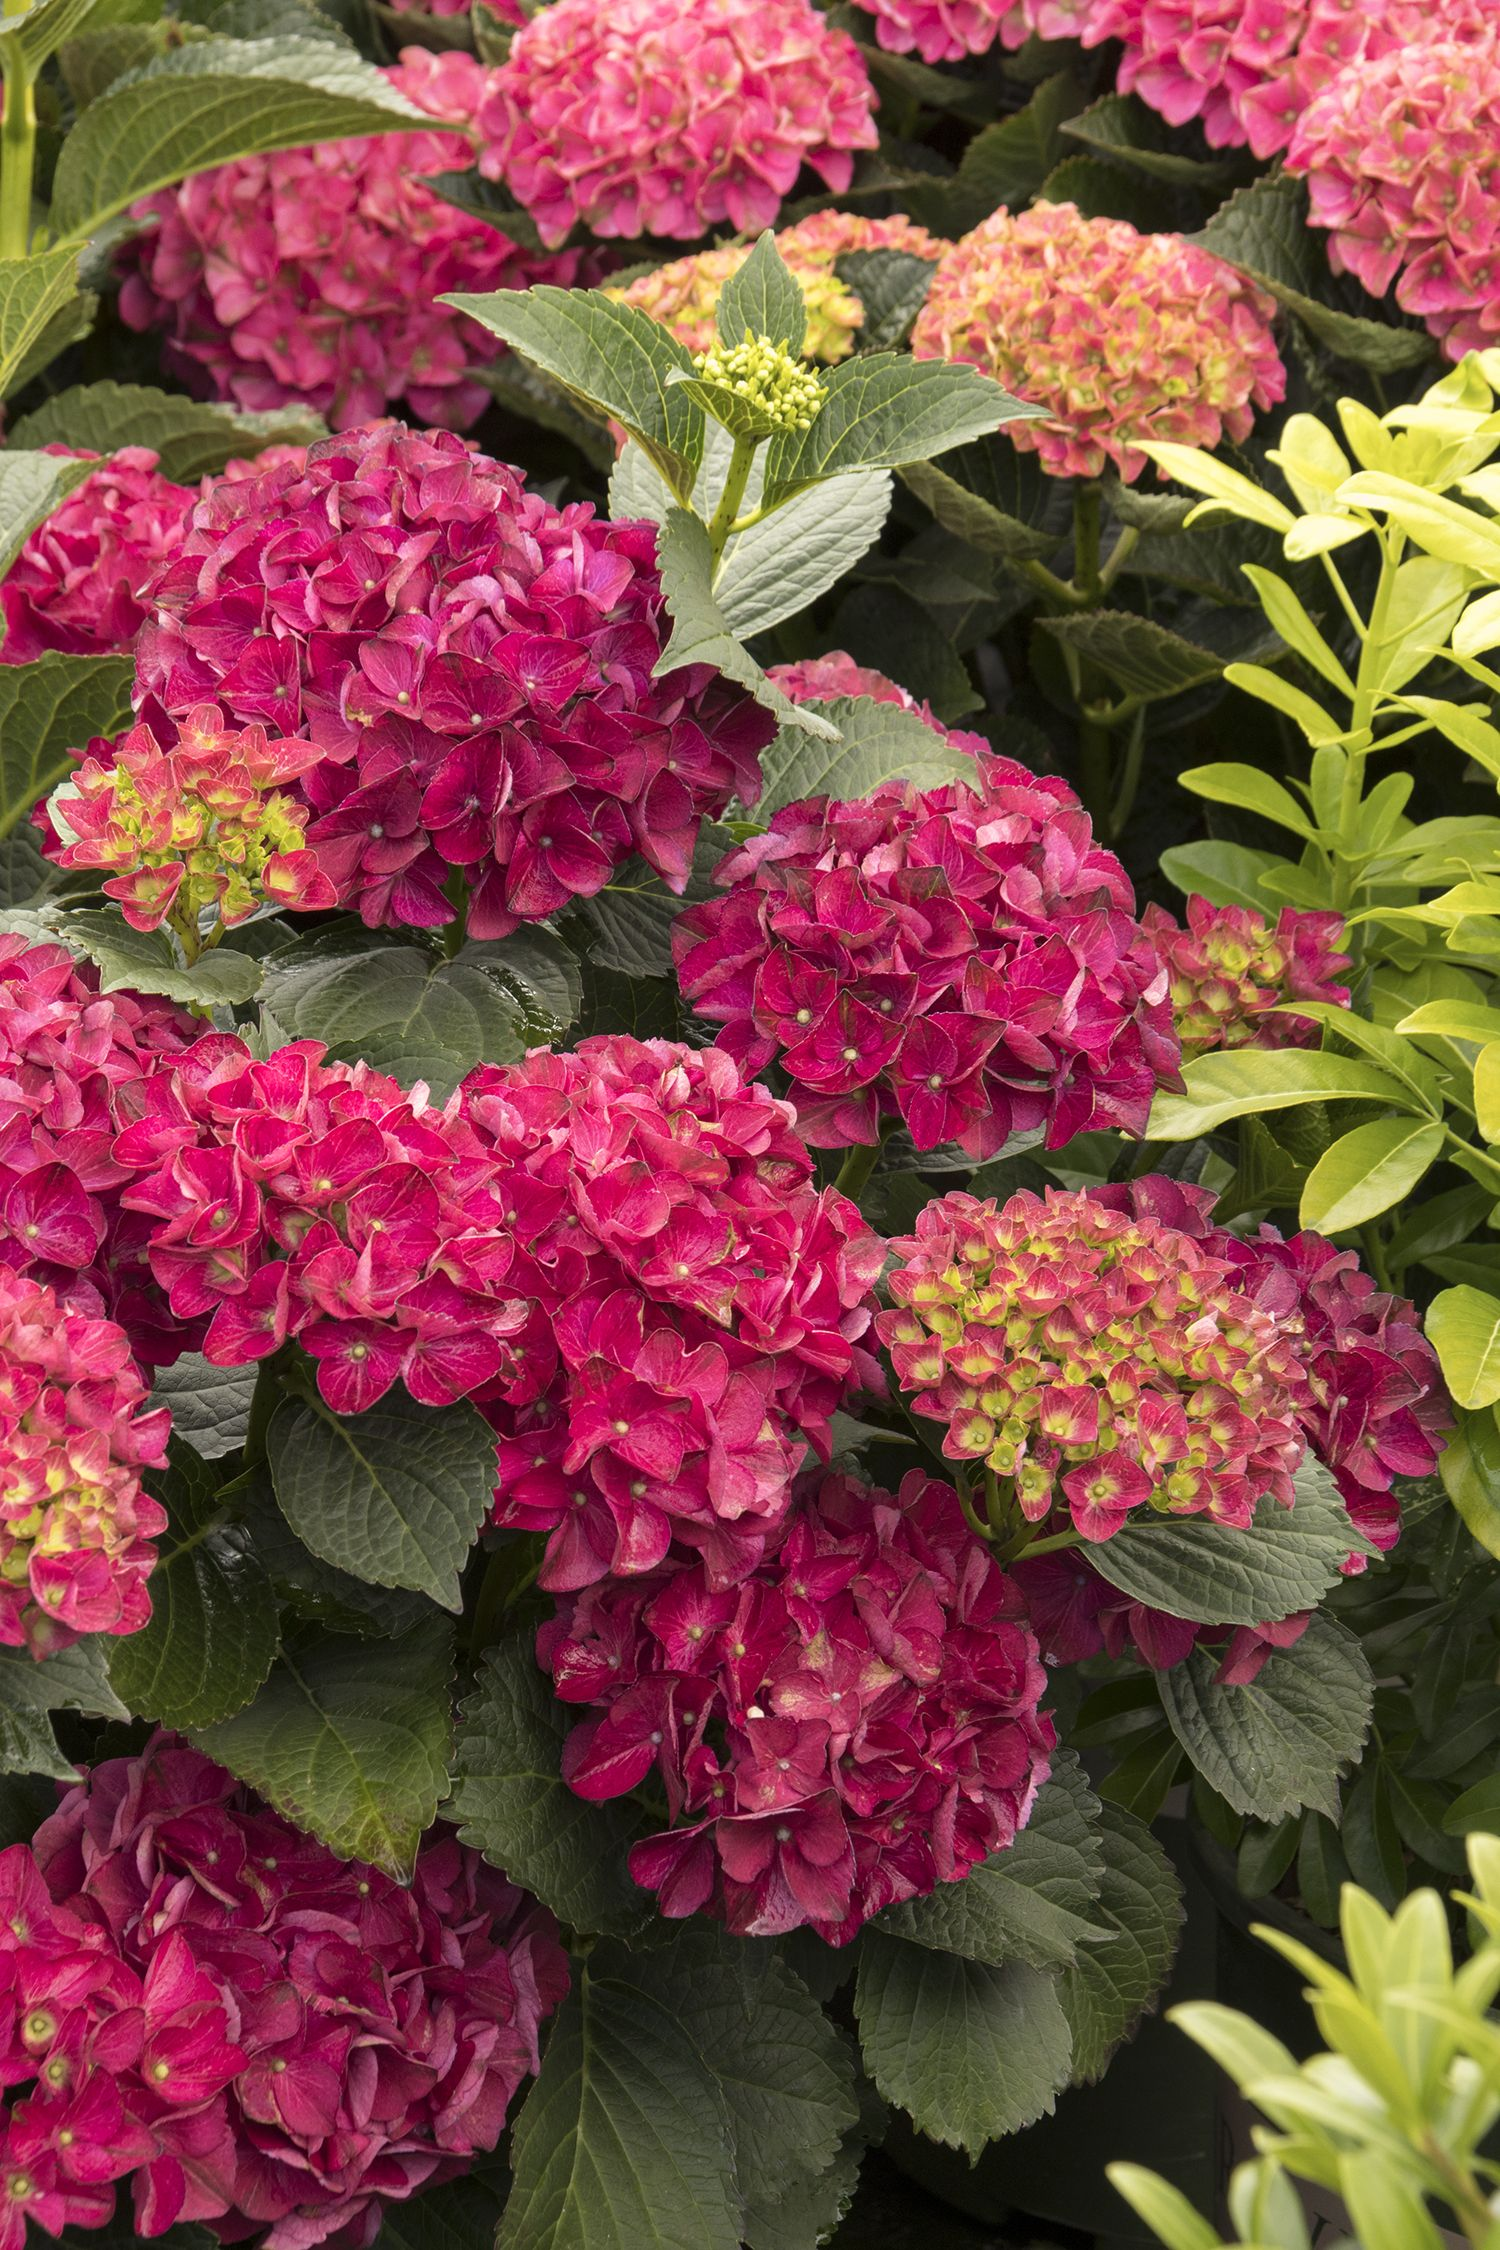 Seaside Serenade Series by Monrovia  – A more compact form of hydrangea ideal for smaller areas that blooms on both last year's growth and new growth. To see all the varieties in the Seaside Serenade series, visit Monrovia.com.